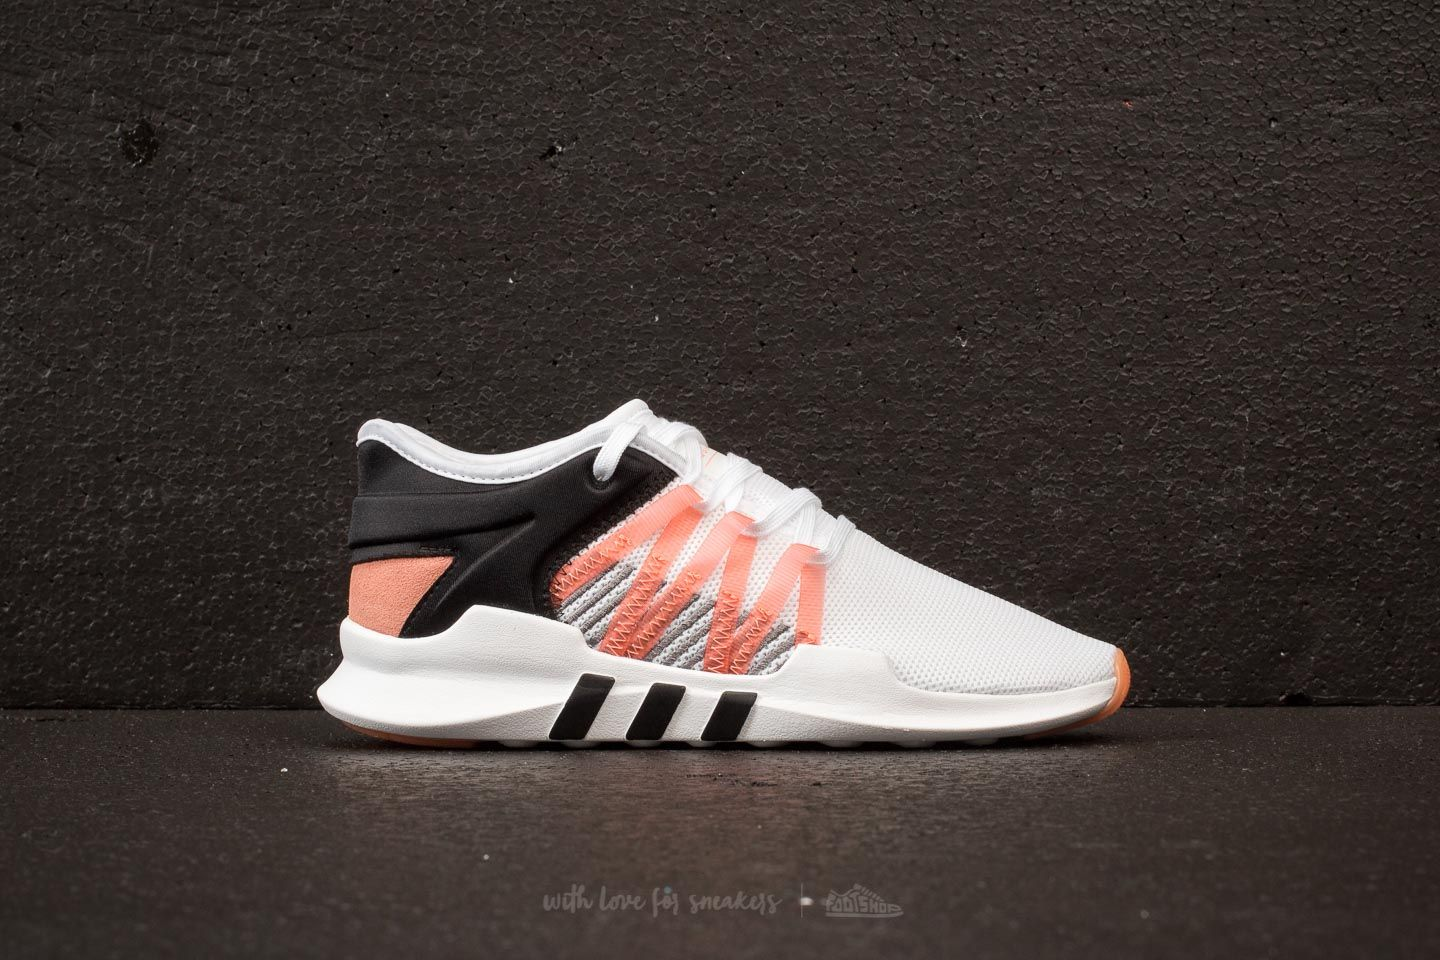 e26c332ae351 adidas EQT Racing ADV W Ftw White  Chalk Coral  Core Black at a great